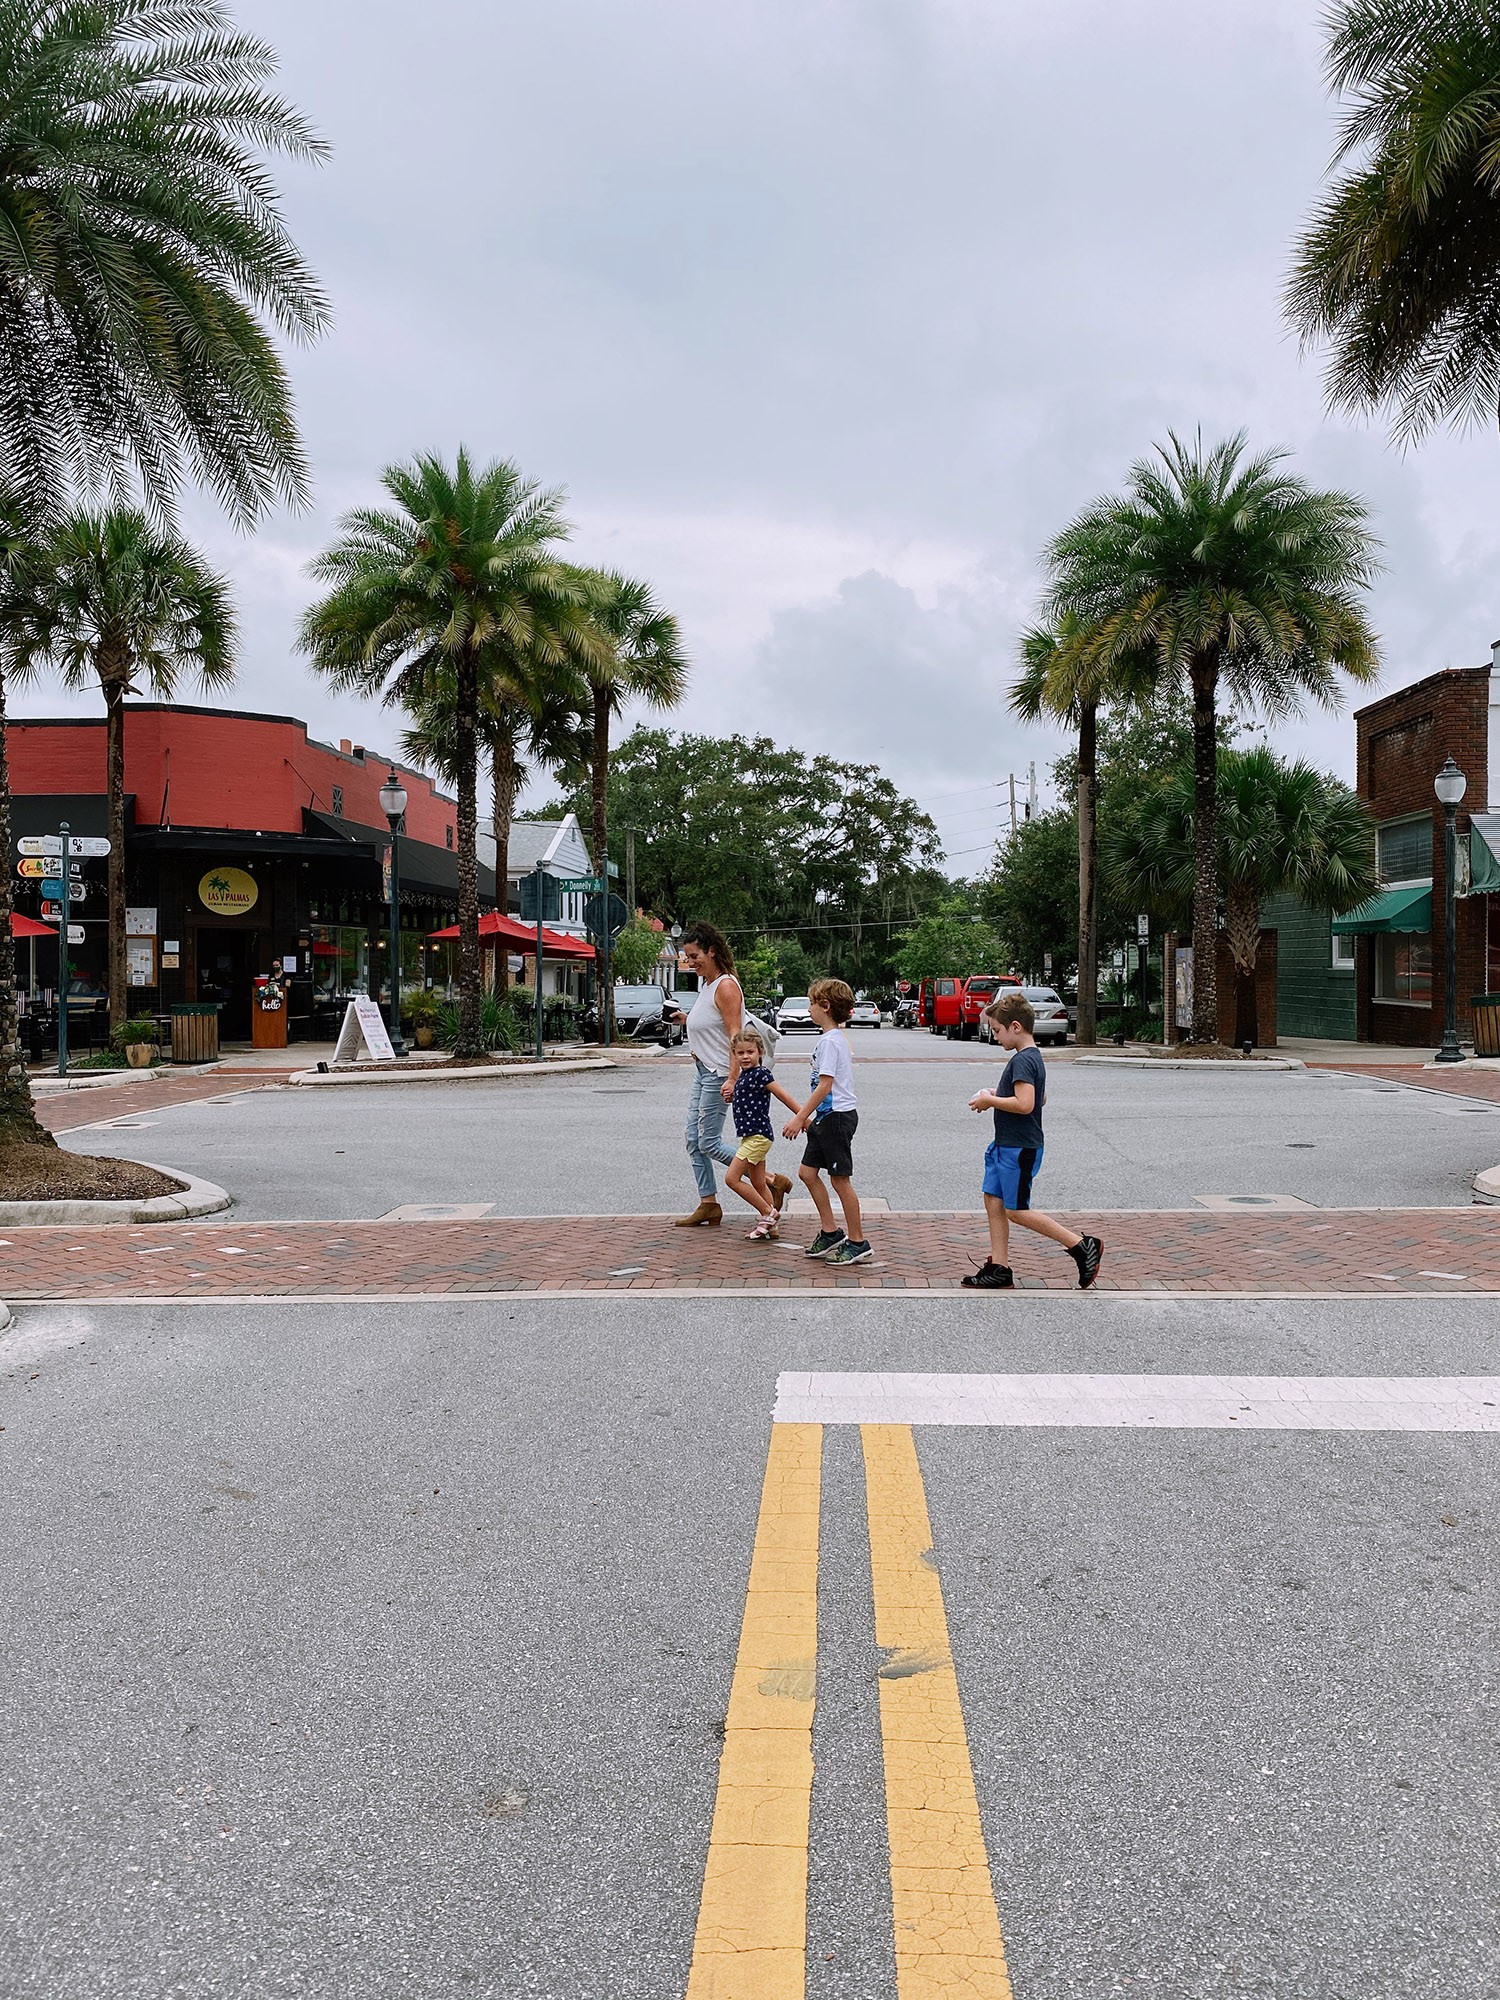 Spectacular Lake County, Florida Staycation Ideas for the Family! Downtown Mount Dora   Lake County by popular Florida blog, Fresh Mommy Blog: image of a mom and her kids walking a cross a street.